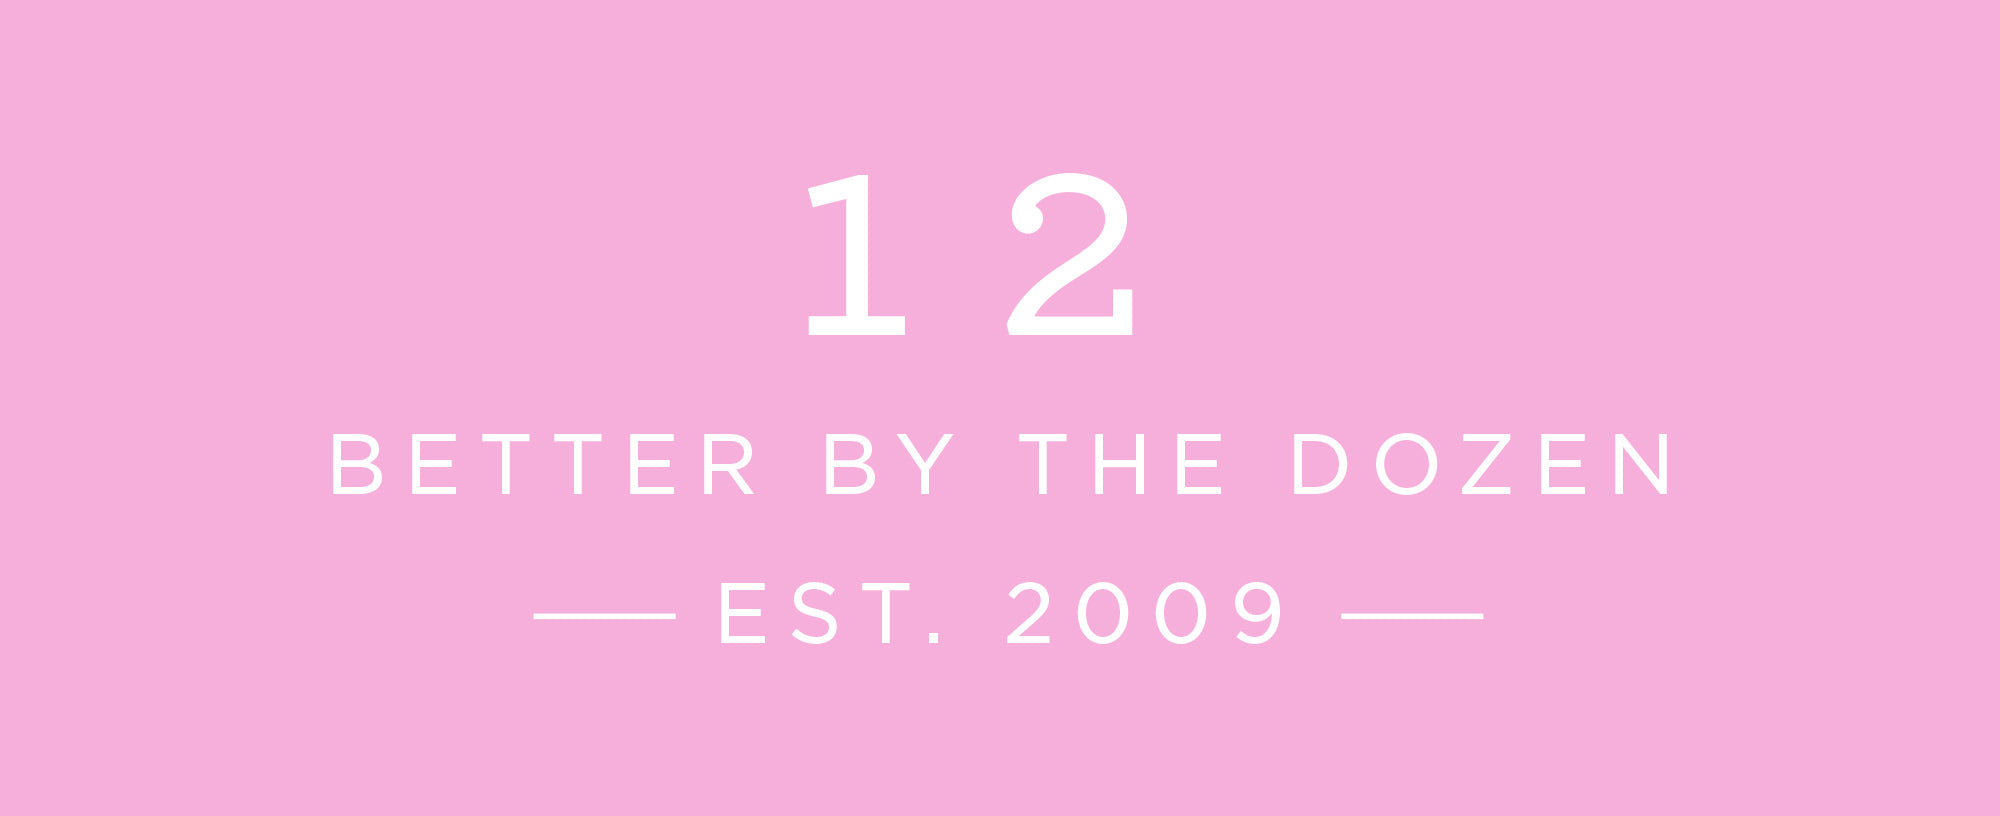 Celebrating 12 Years of FP   Better by the Dozen